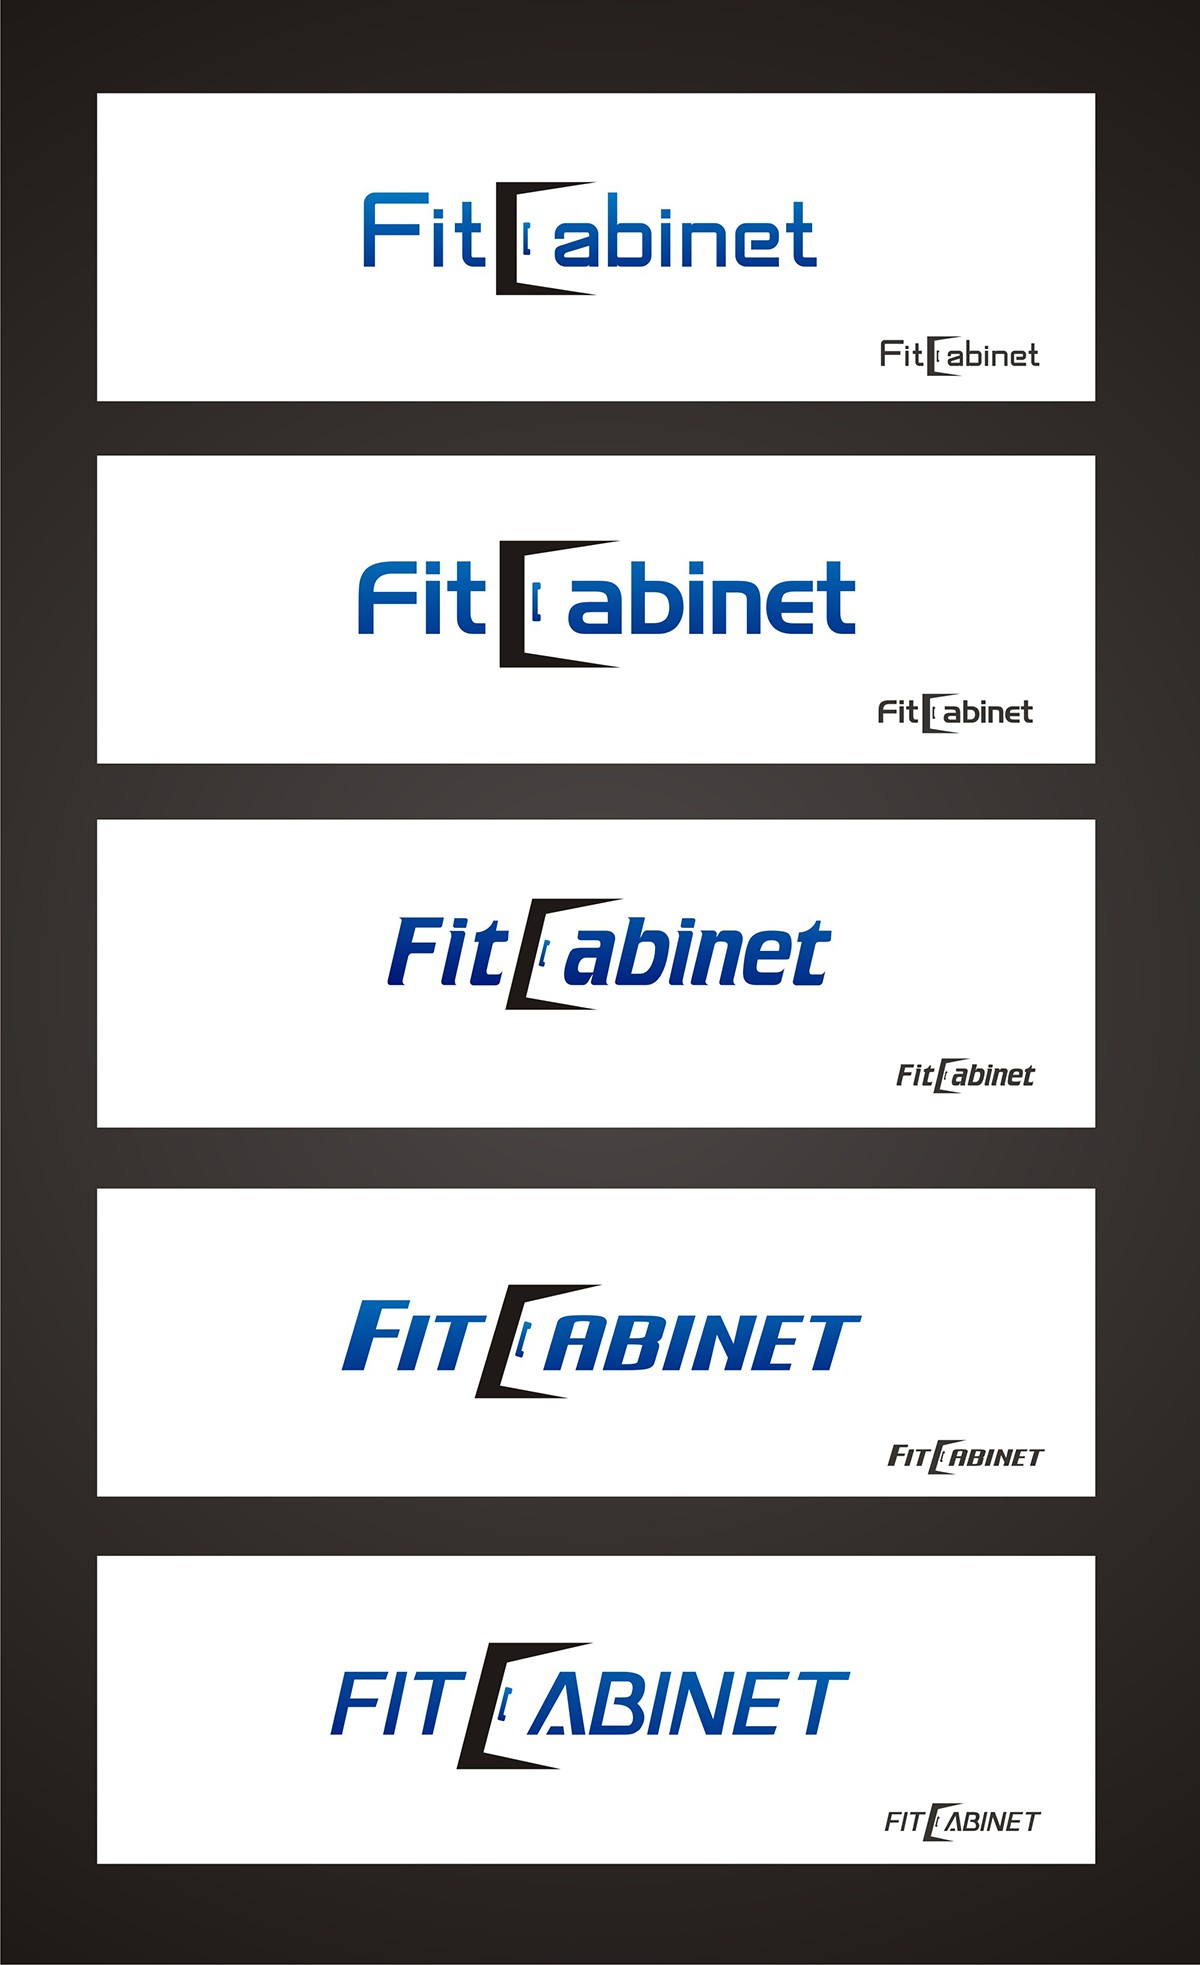 Create the next logo for FitCabinet